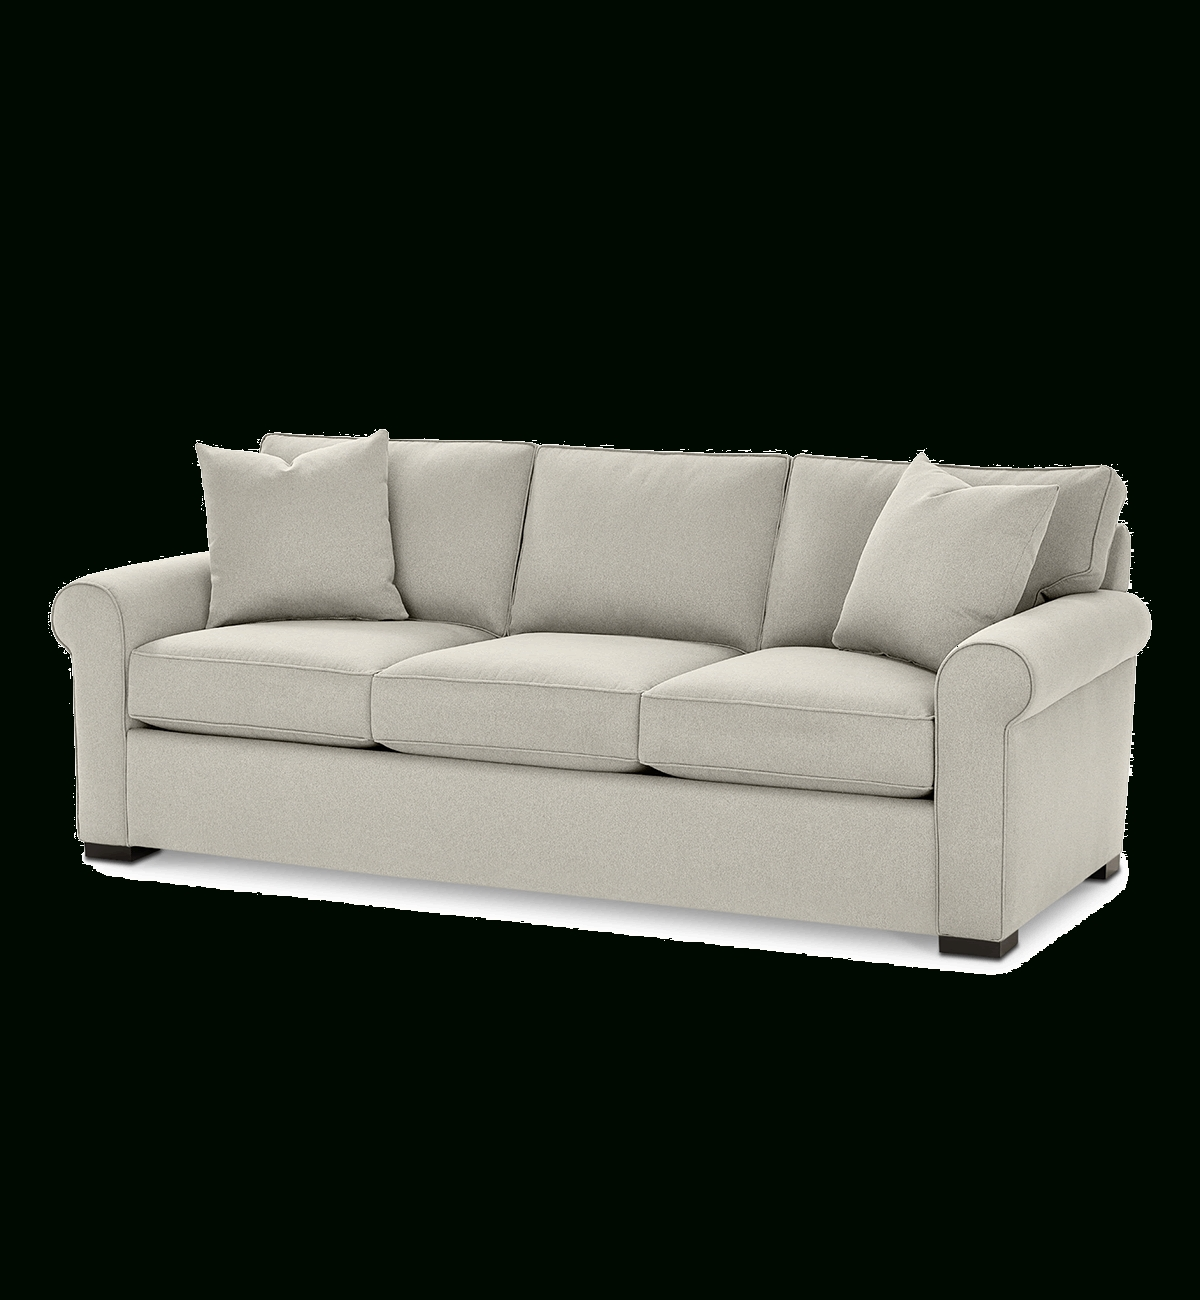 Widely Used Couches & Sofas Couches And Sofas – Macy's Intended For Macys Sofas (View 13 of 15)